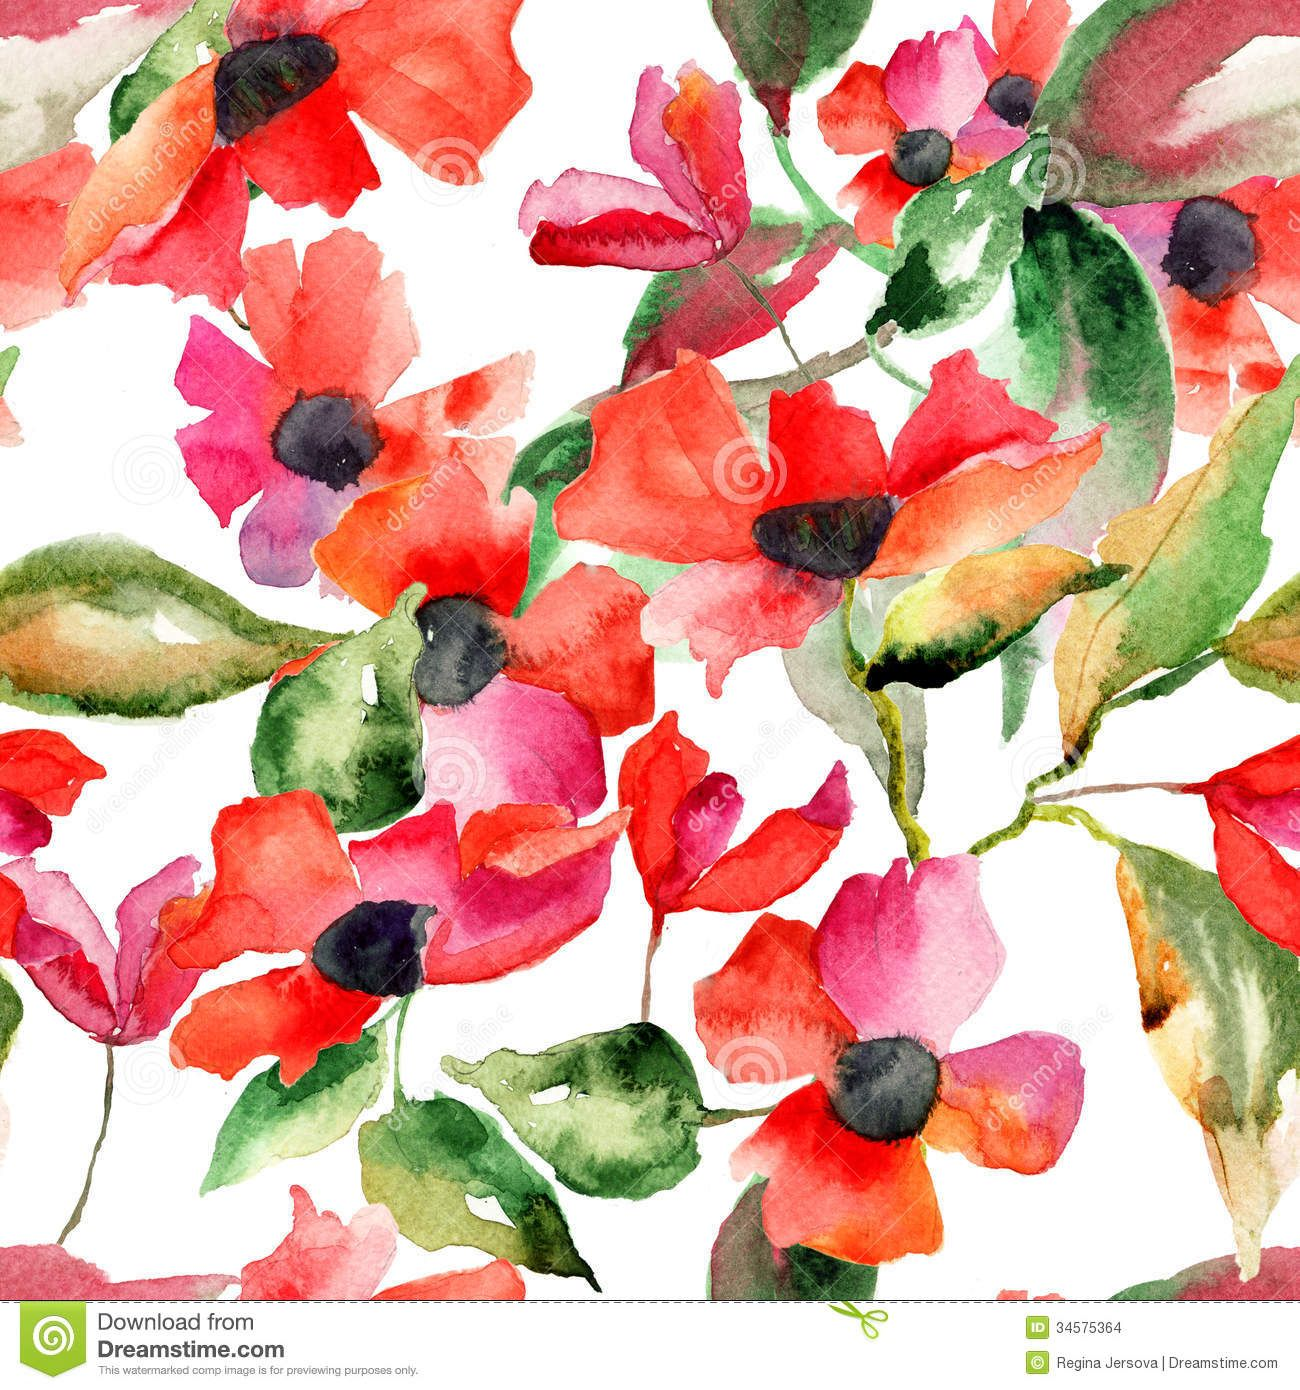 watercolor paisley - Google Search | Water color floral | Pinterest ...